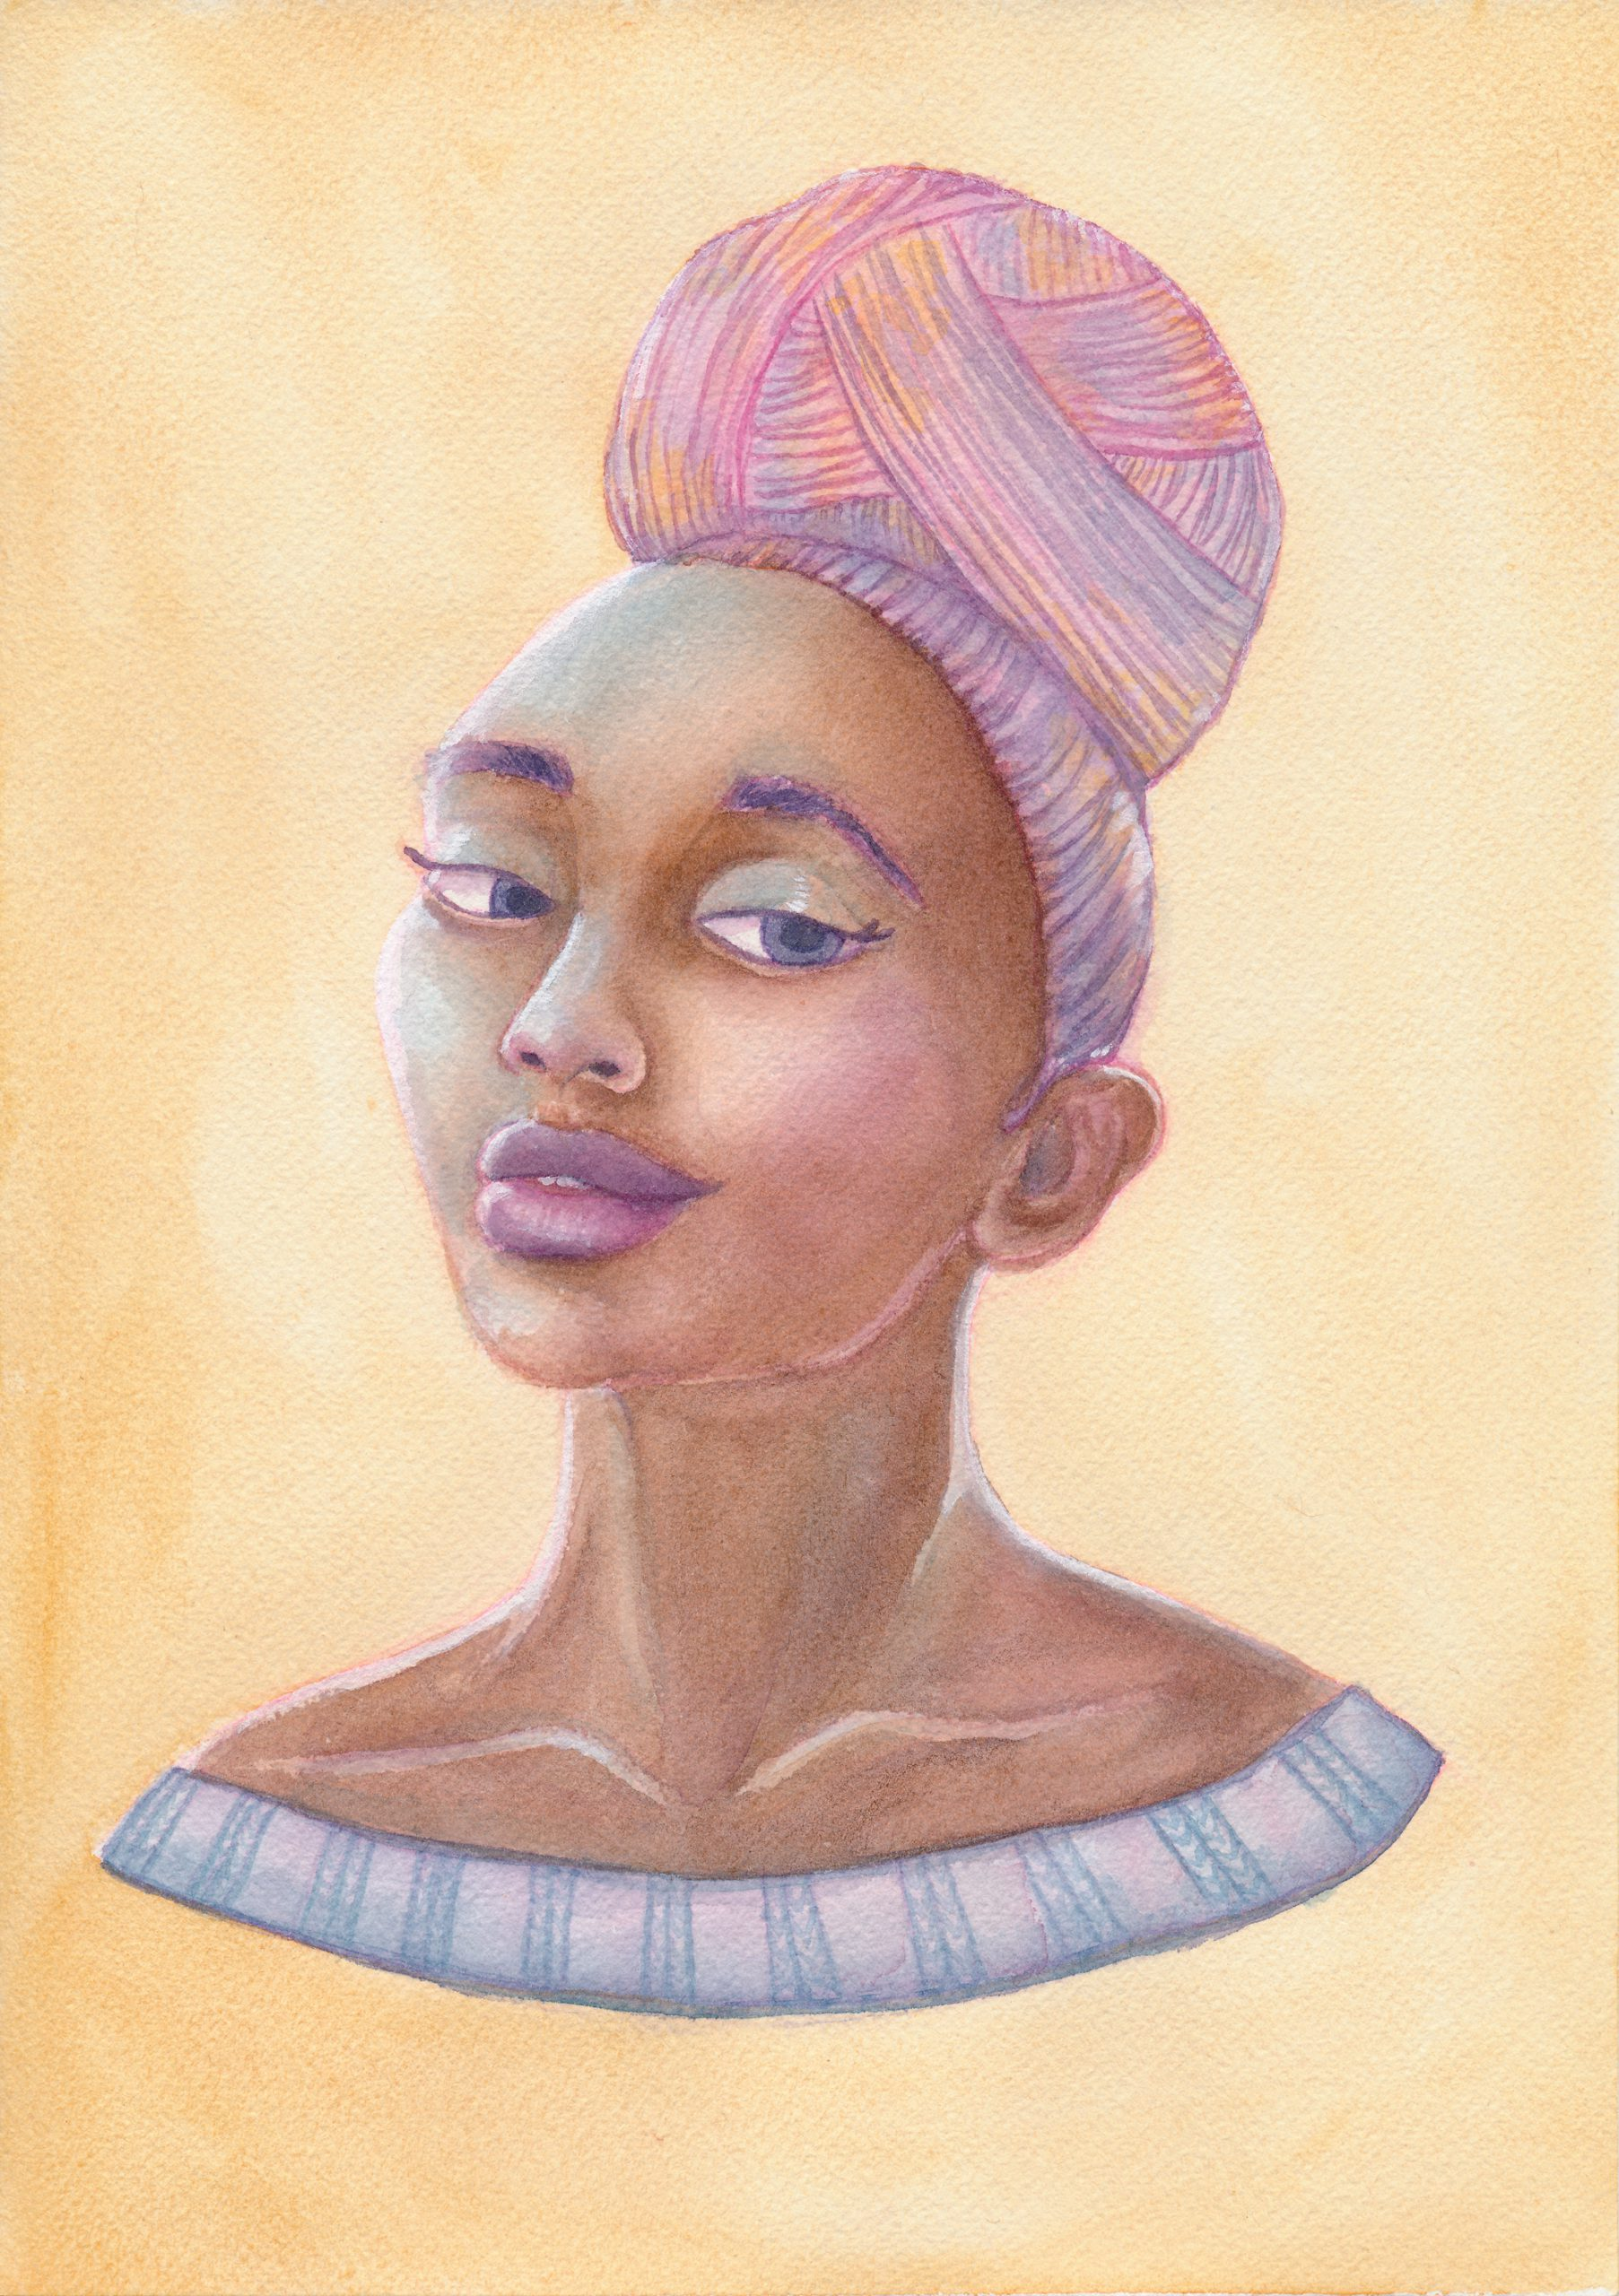 A watercolor painting of a black woman with a pink and purple ball of yarn instead of hair